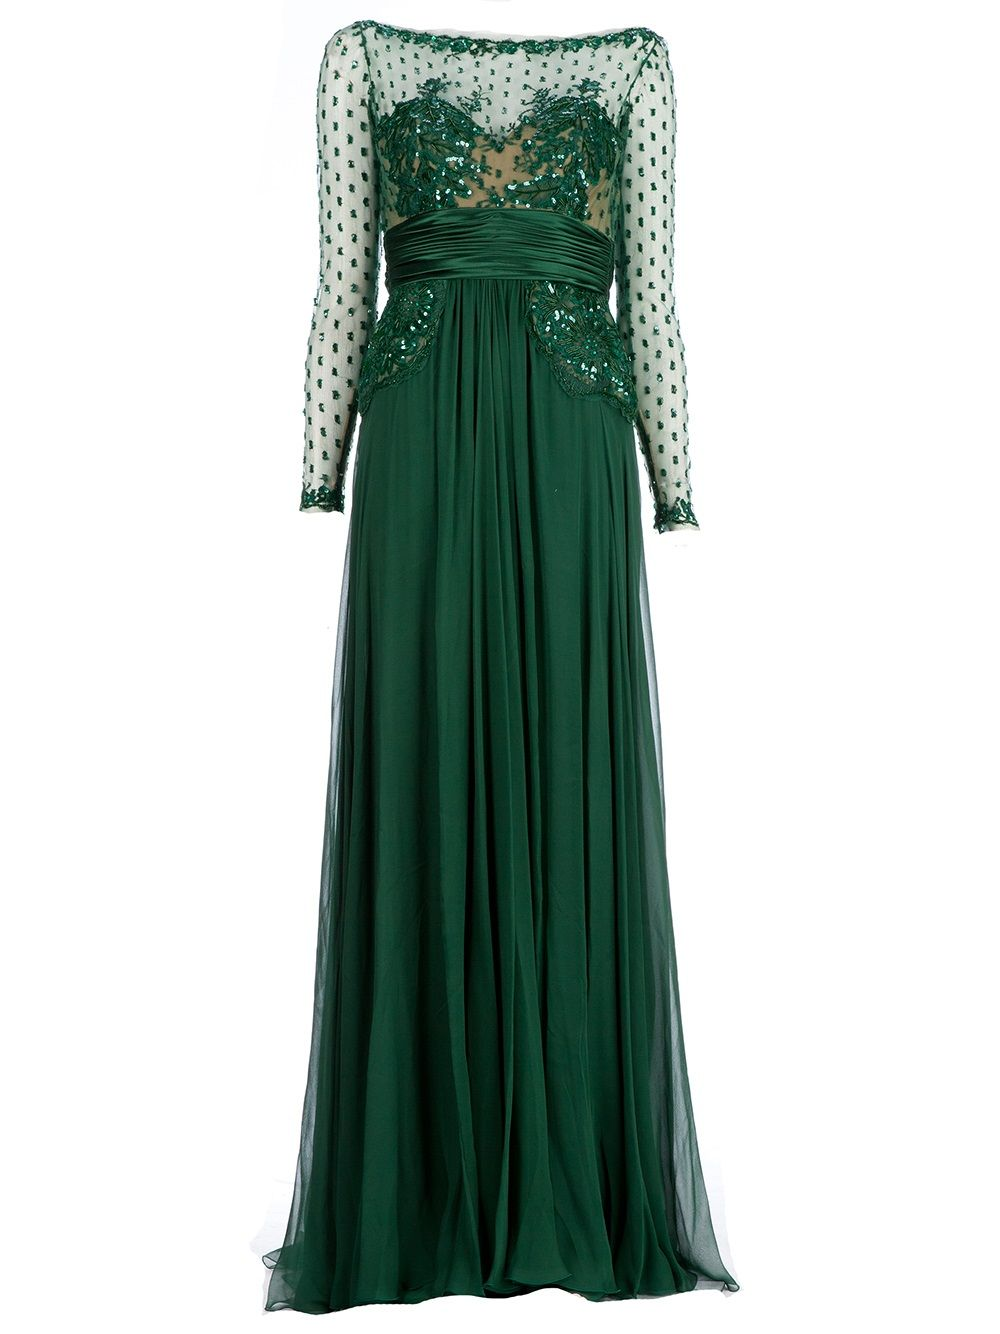 Zuhair murad sequin embellished gown lueclaireur farfetch